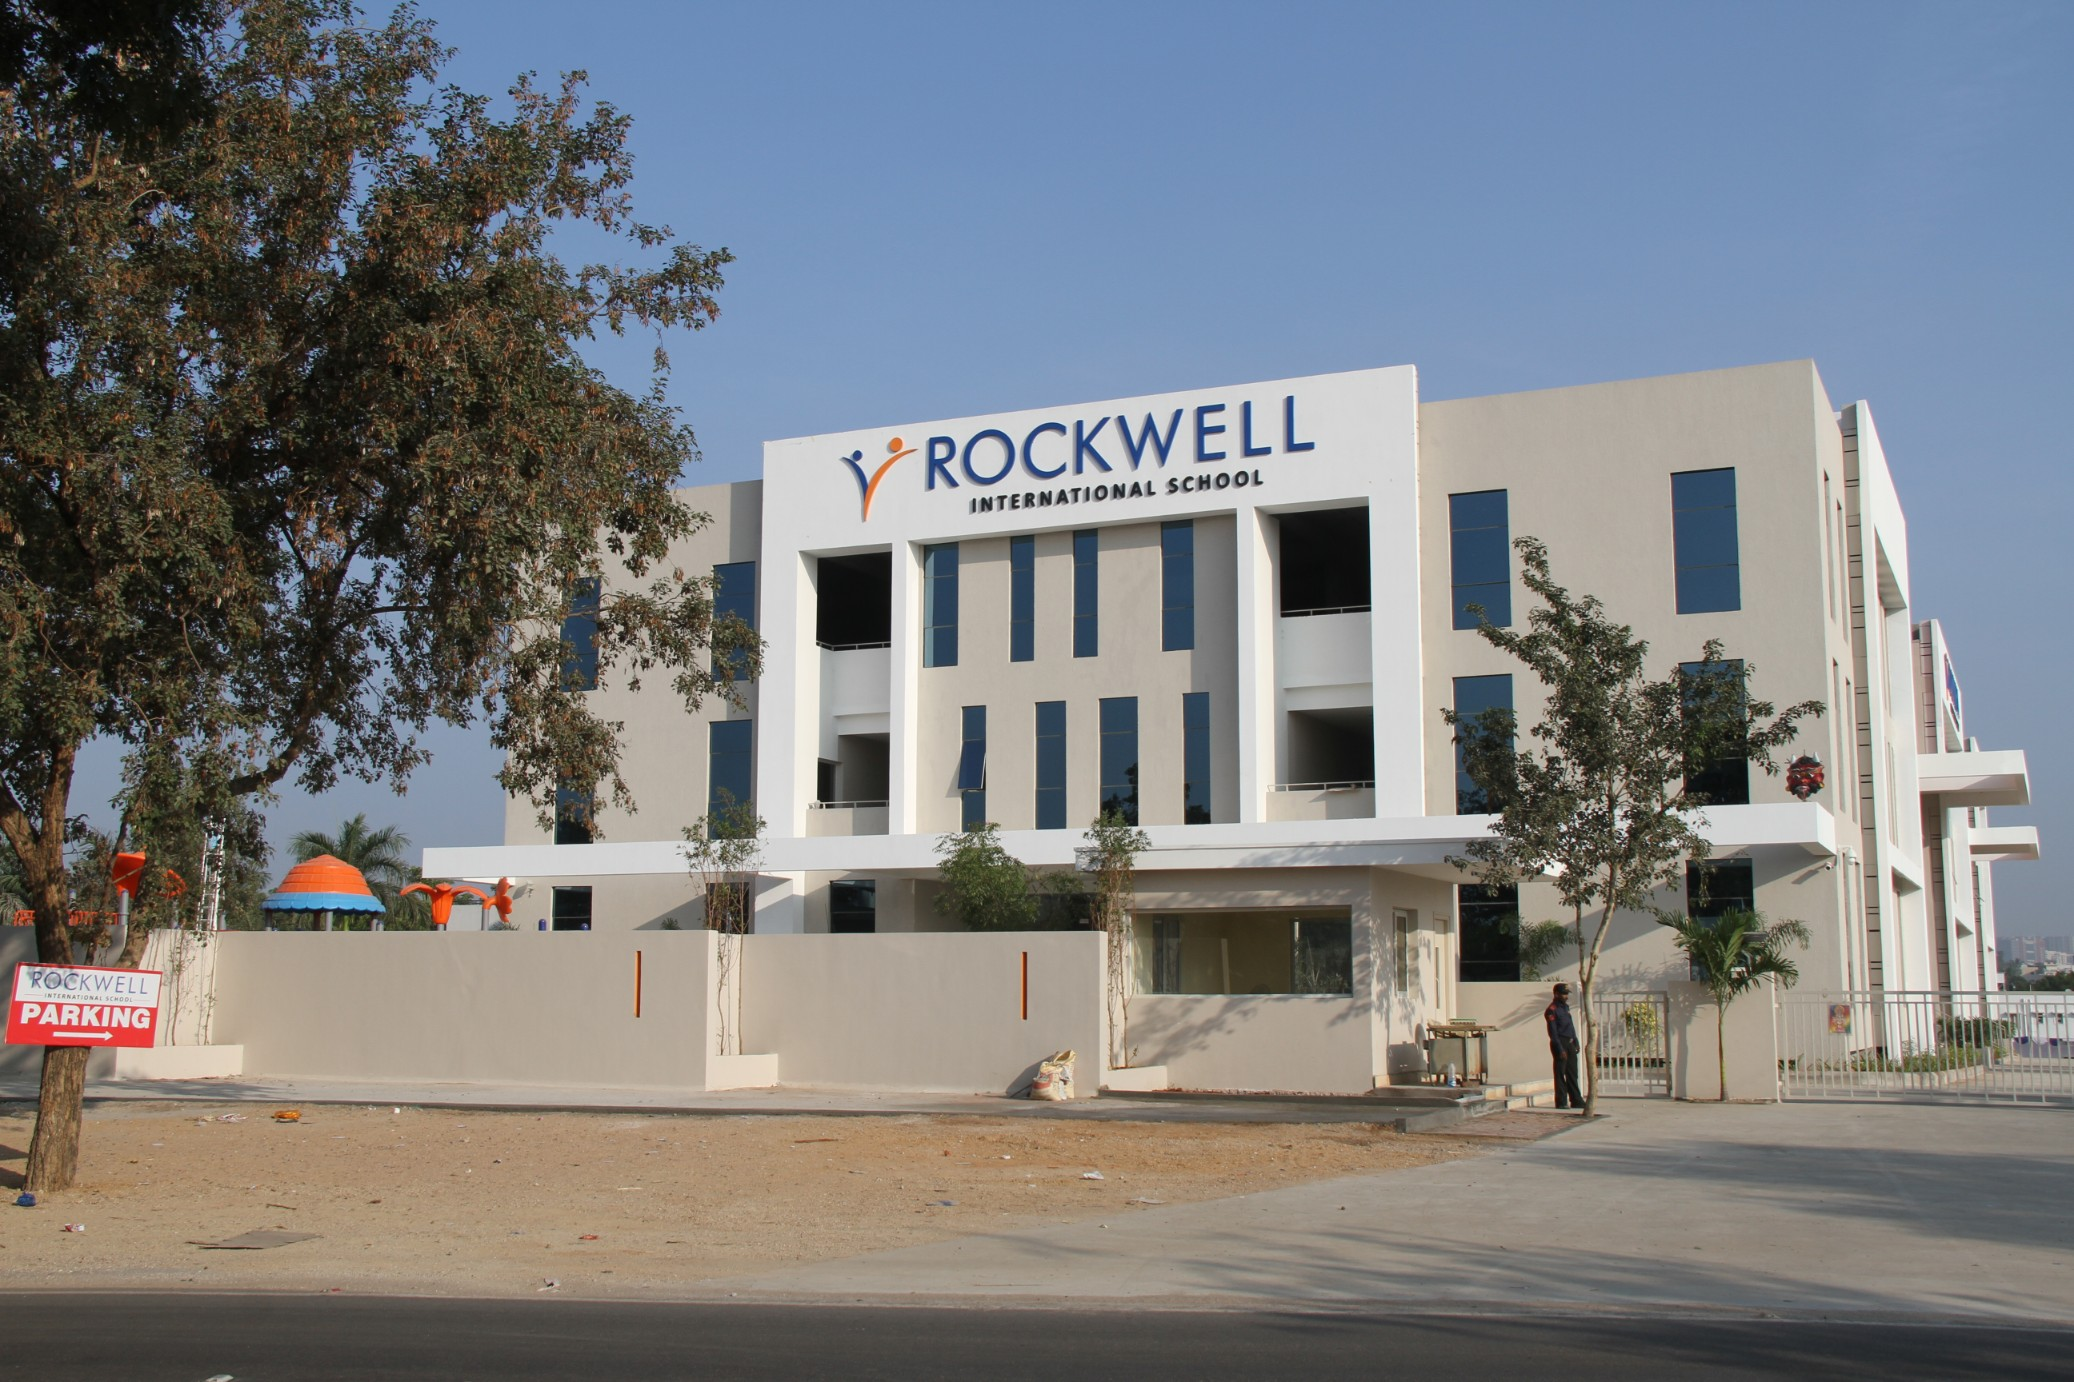 Rockwell Entrance